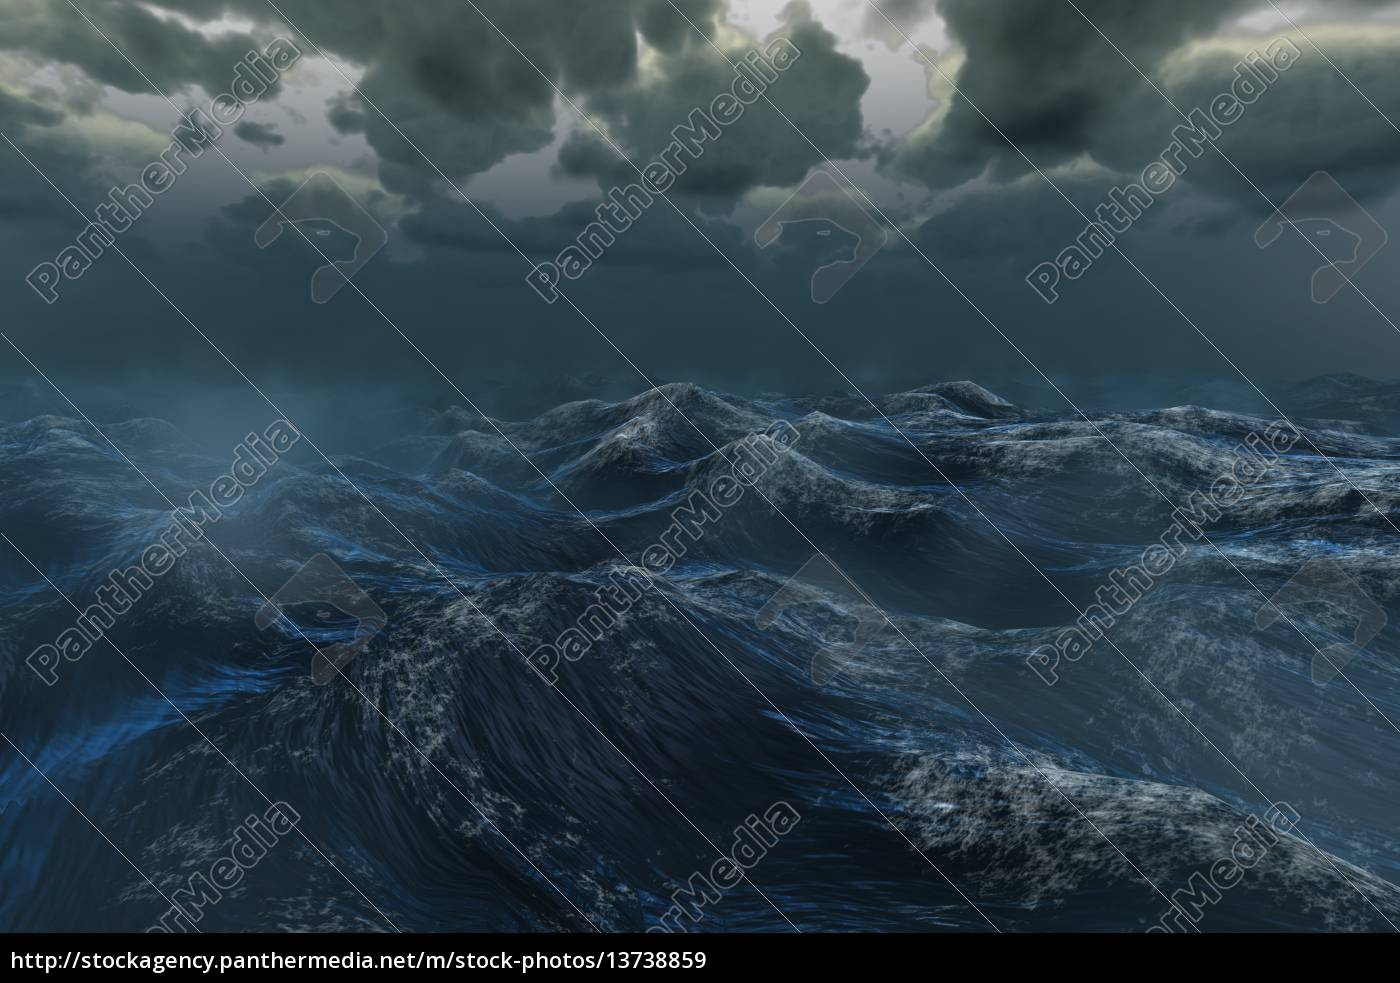 rough, stormy, ocean, under, dark, sky - 13738859